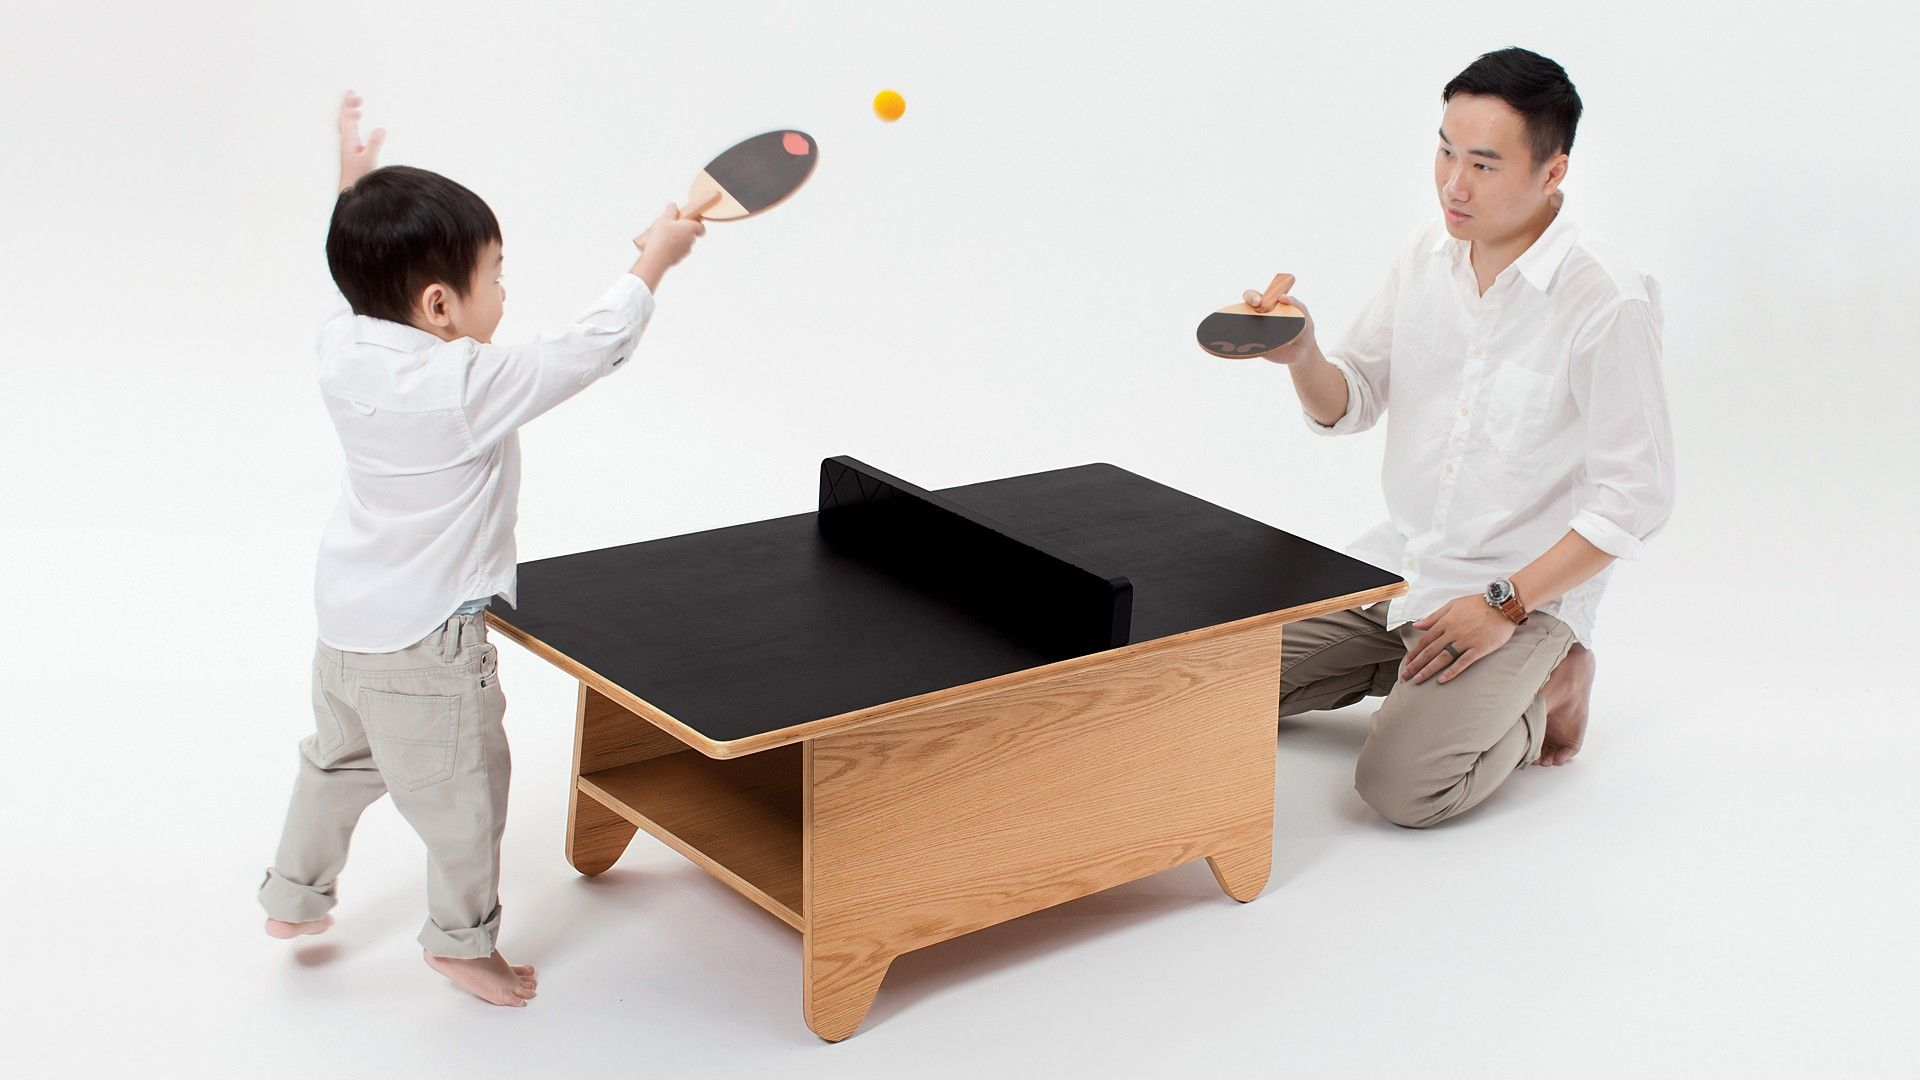 Ping Pong Table For Kids Coffee Table Chalkboard With Images Unique Coffee Table Ping Pong Table Kids Table Chair Set